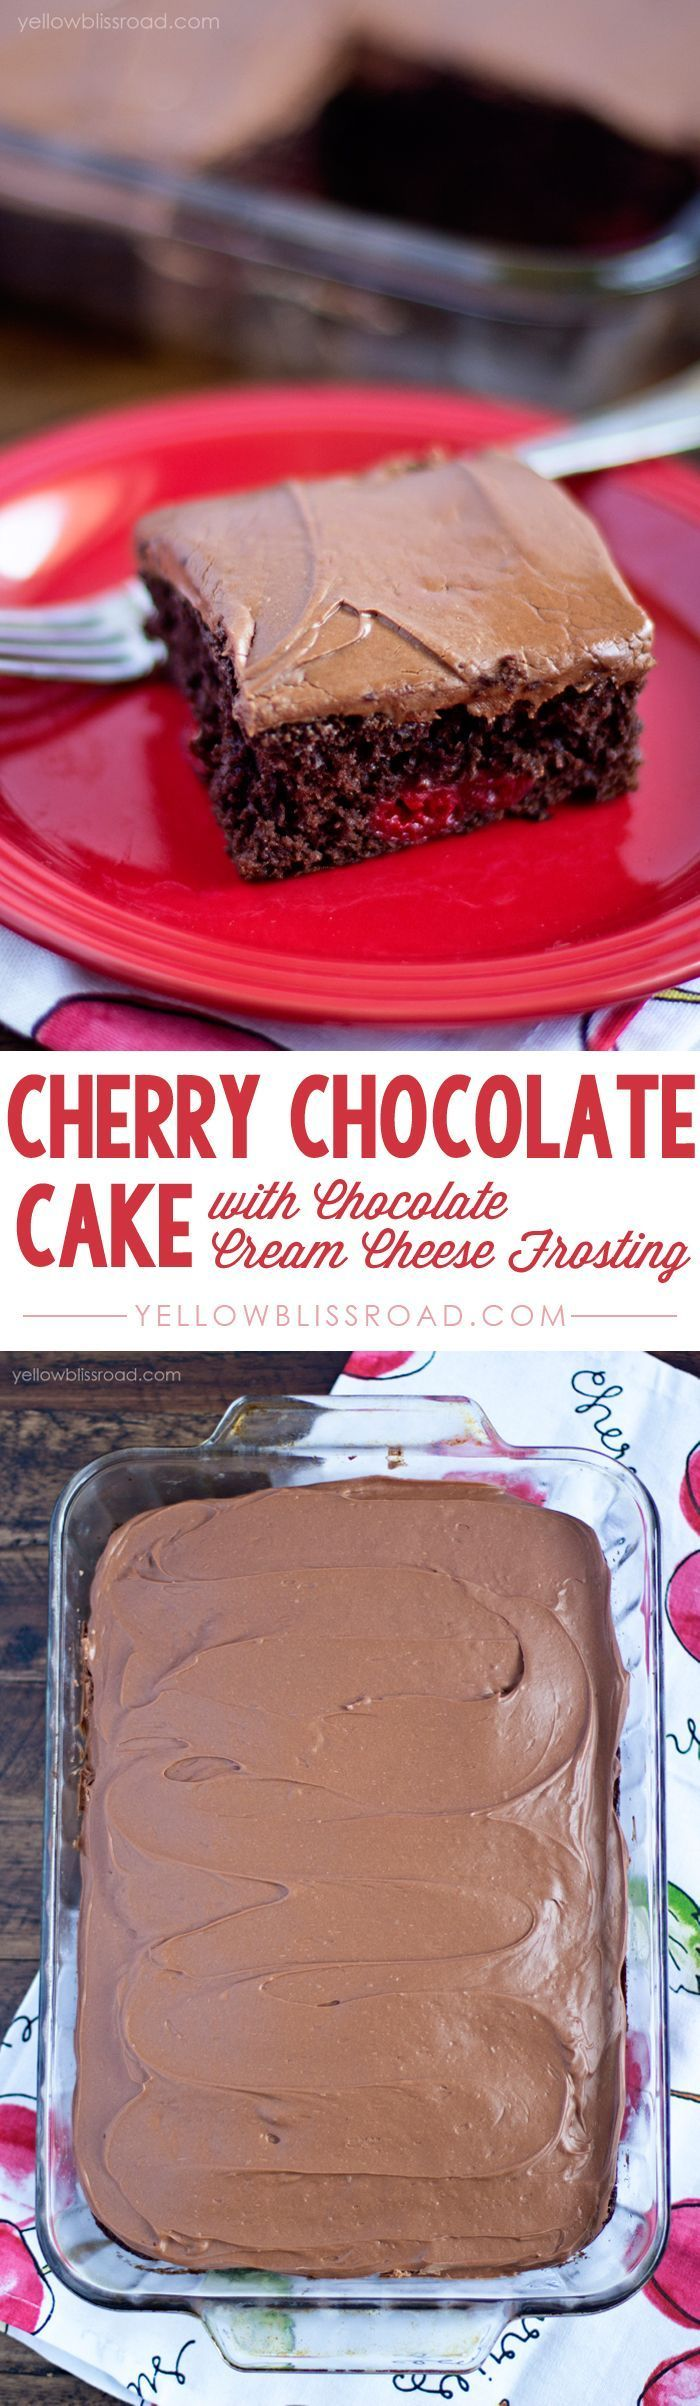 Best 20+ Chocolate cake roll ideas on Pinterest | Chocolate roll ...